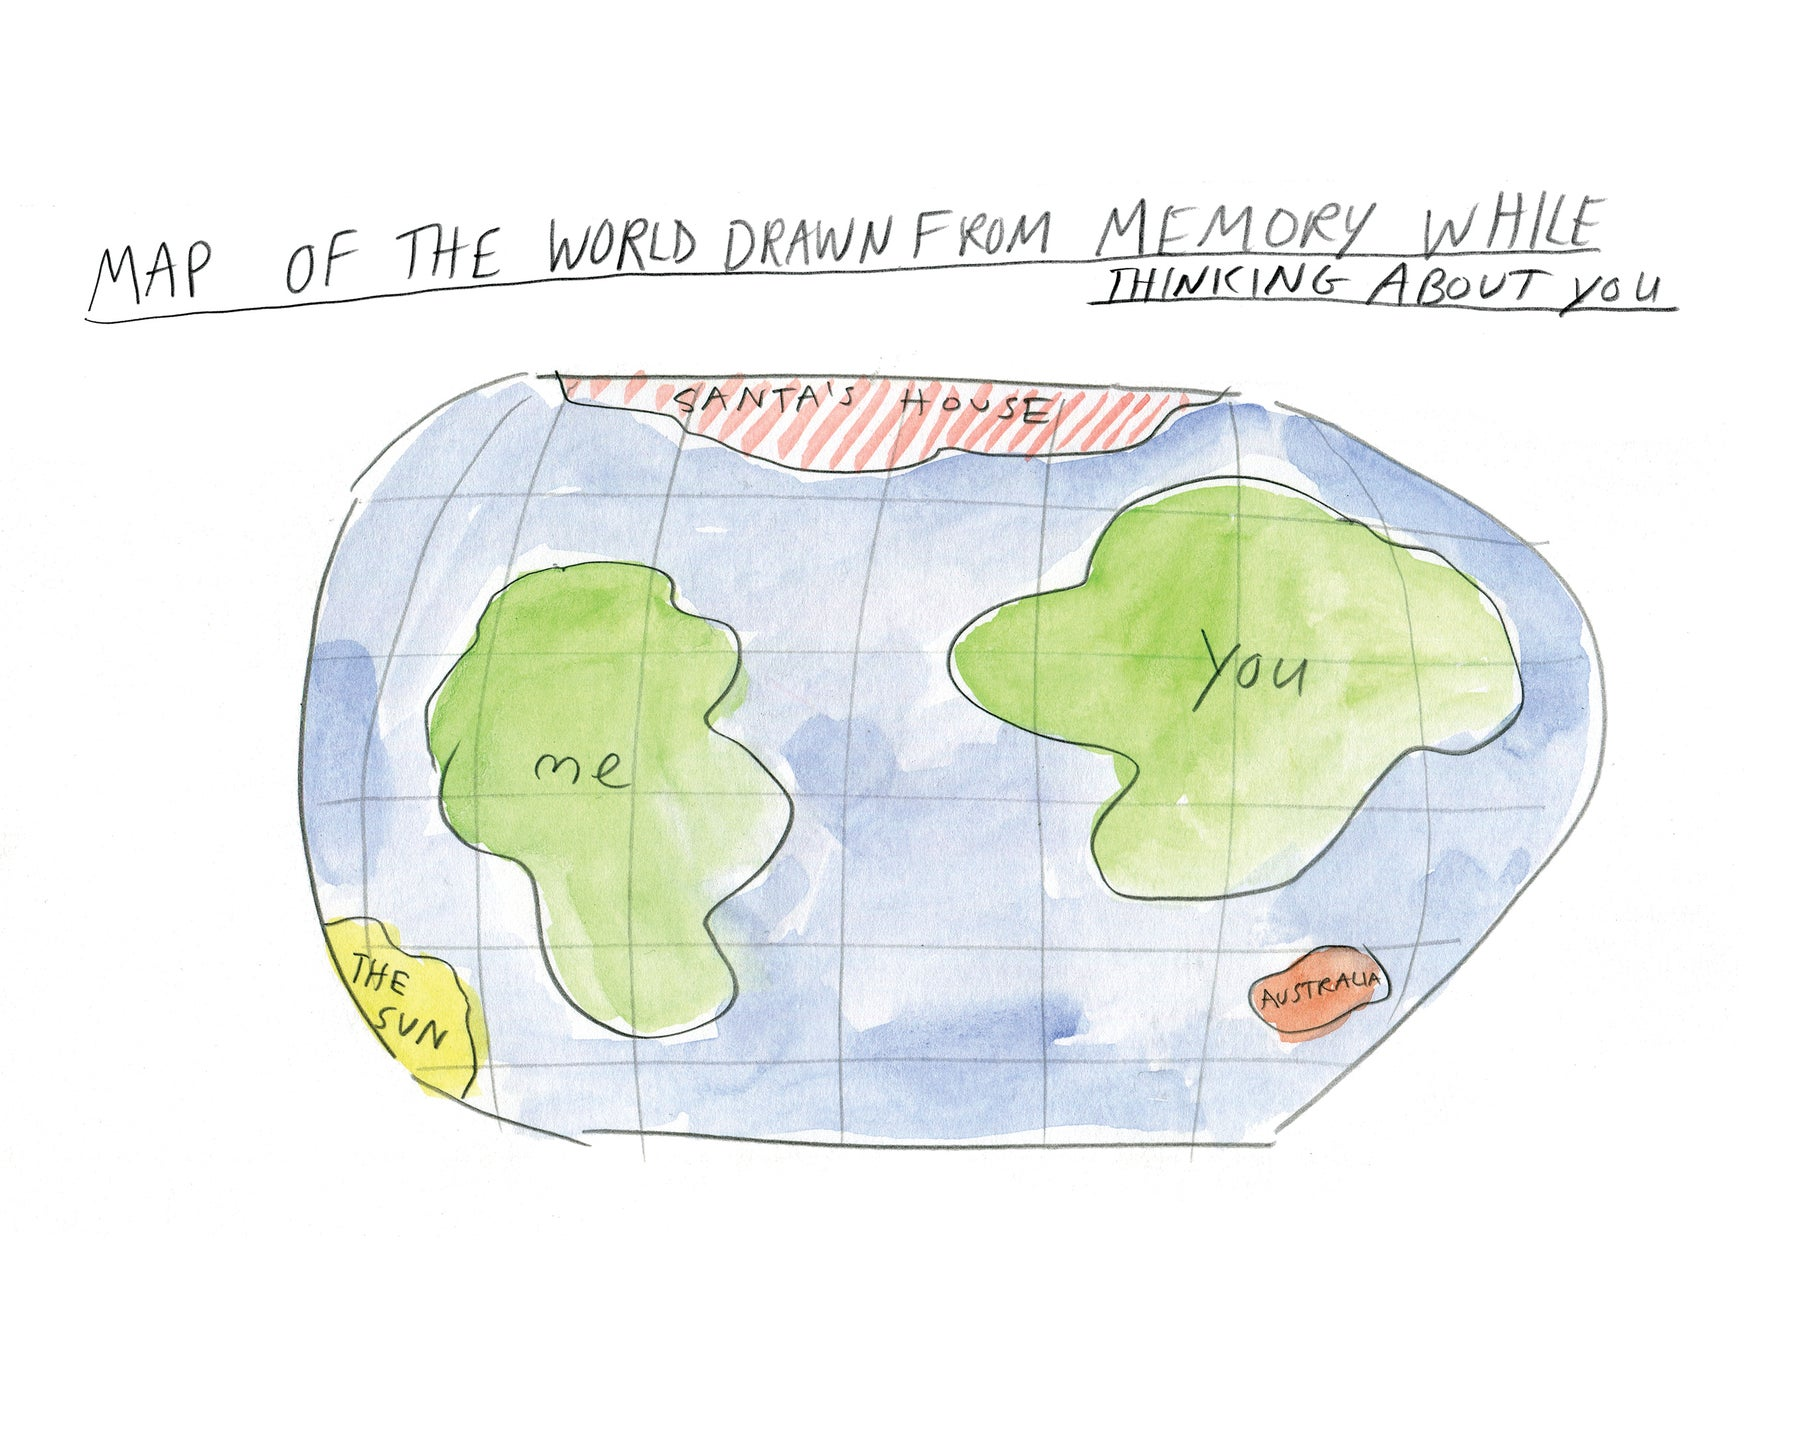 Can You Show Me A Map Of The World.Map Of The World Drawn While Thinking About You